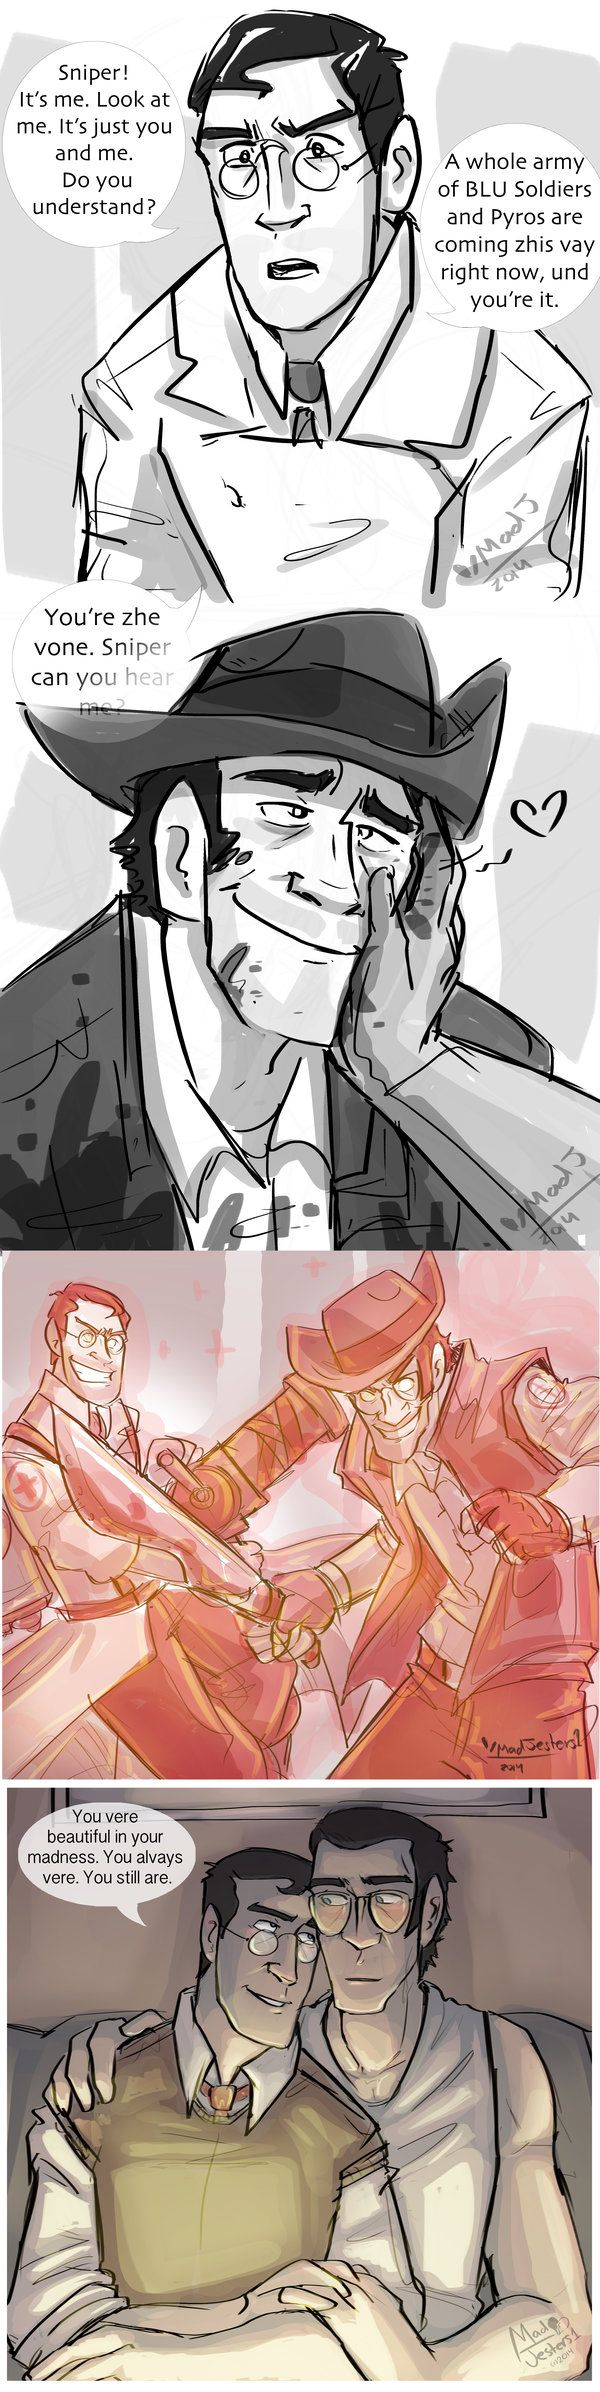 TF2- Medic x Sniper by MadJesters1 on DeviantArt